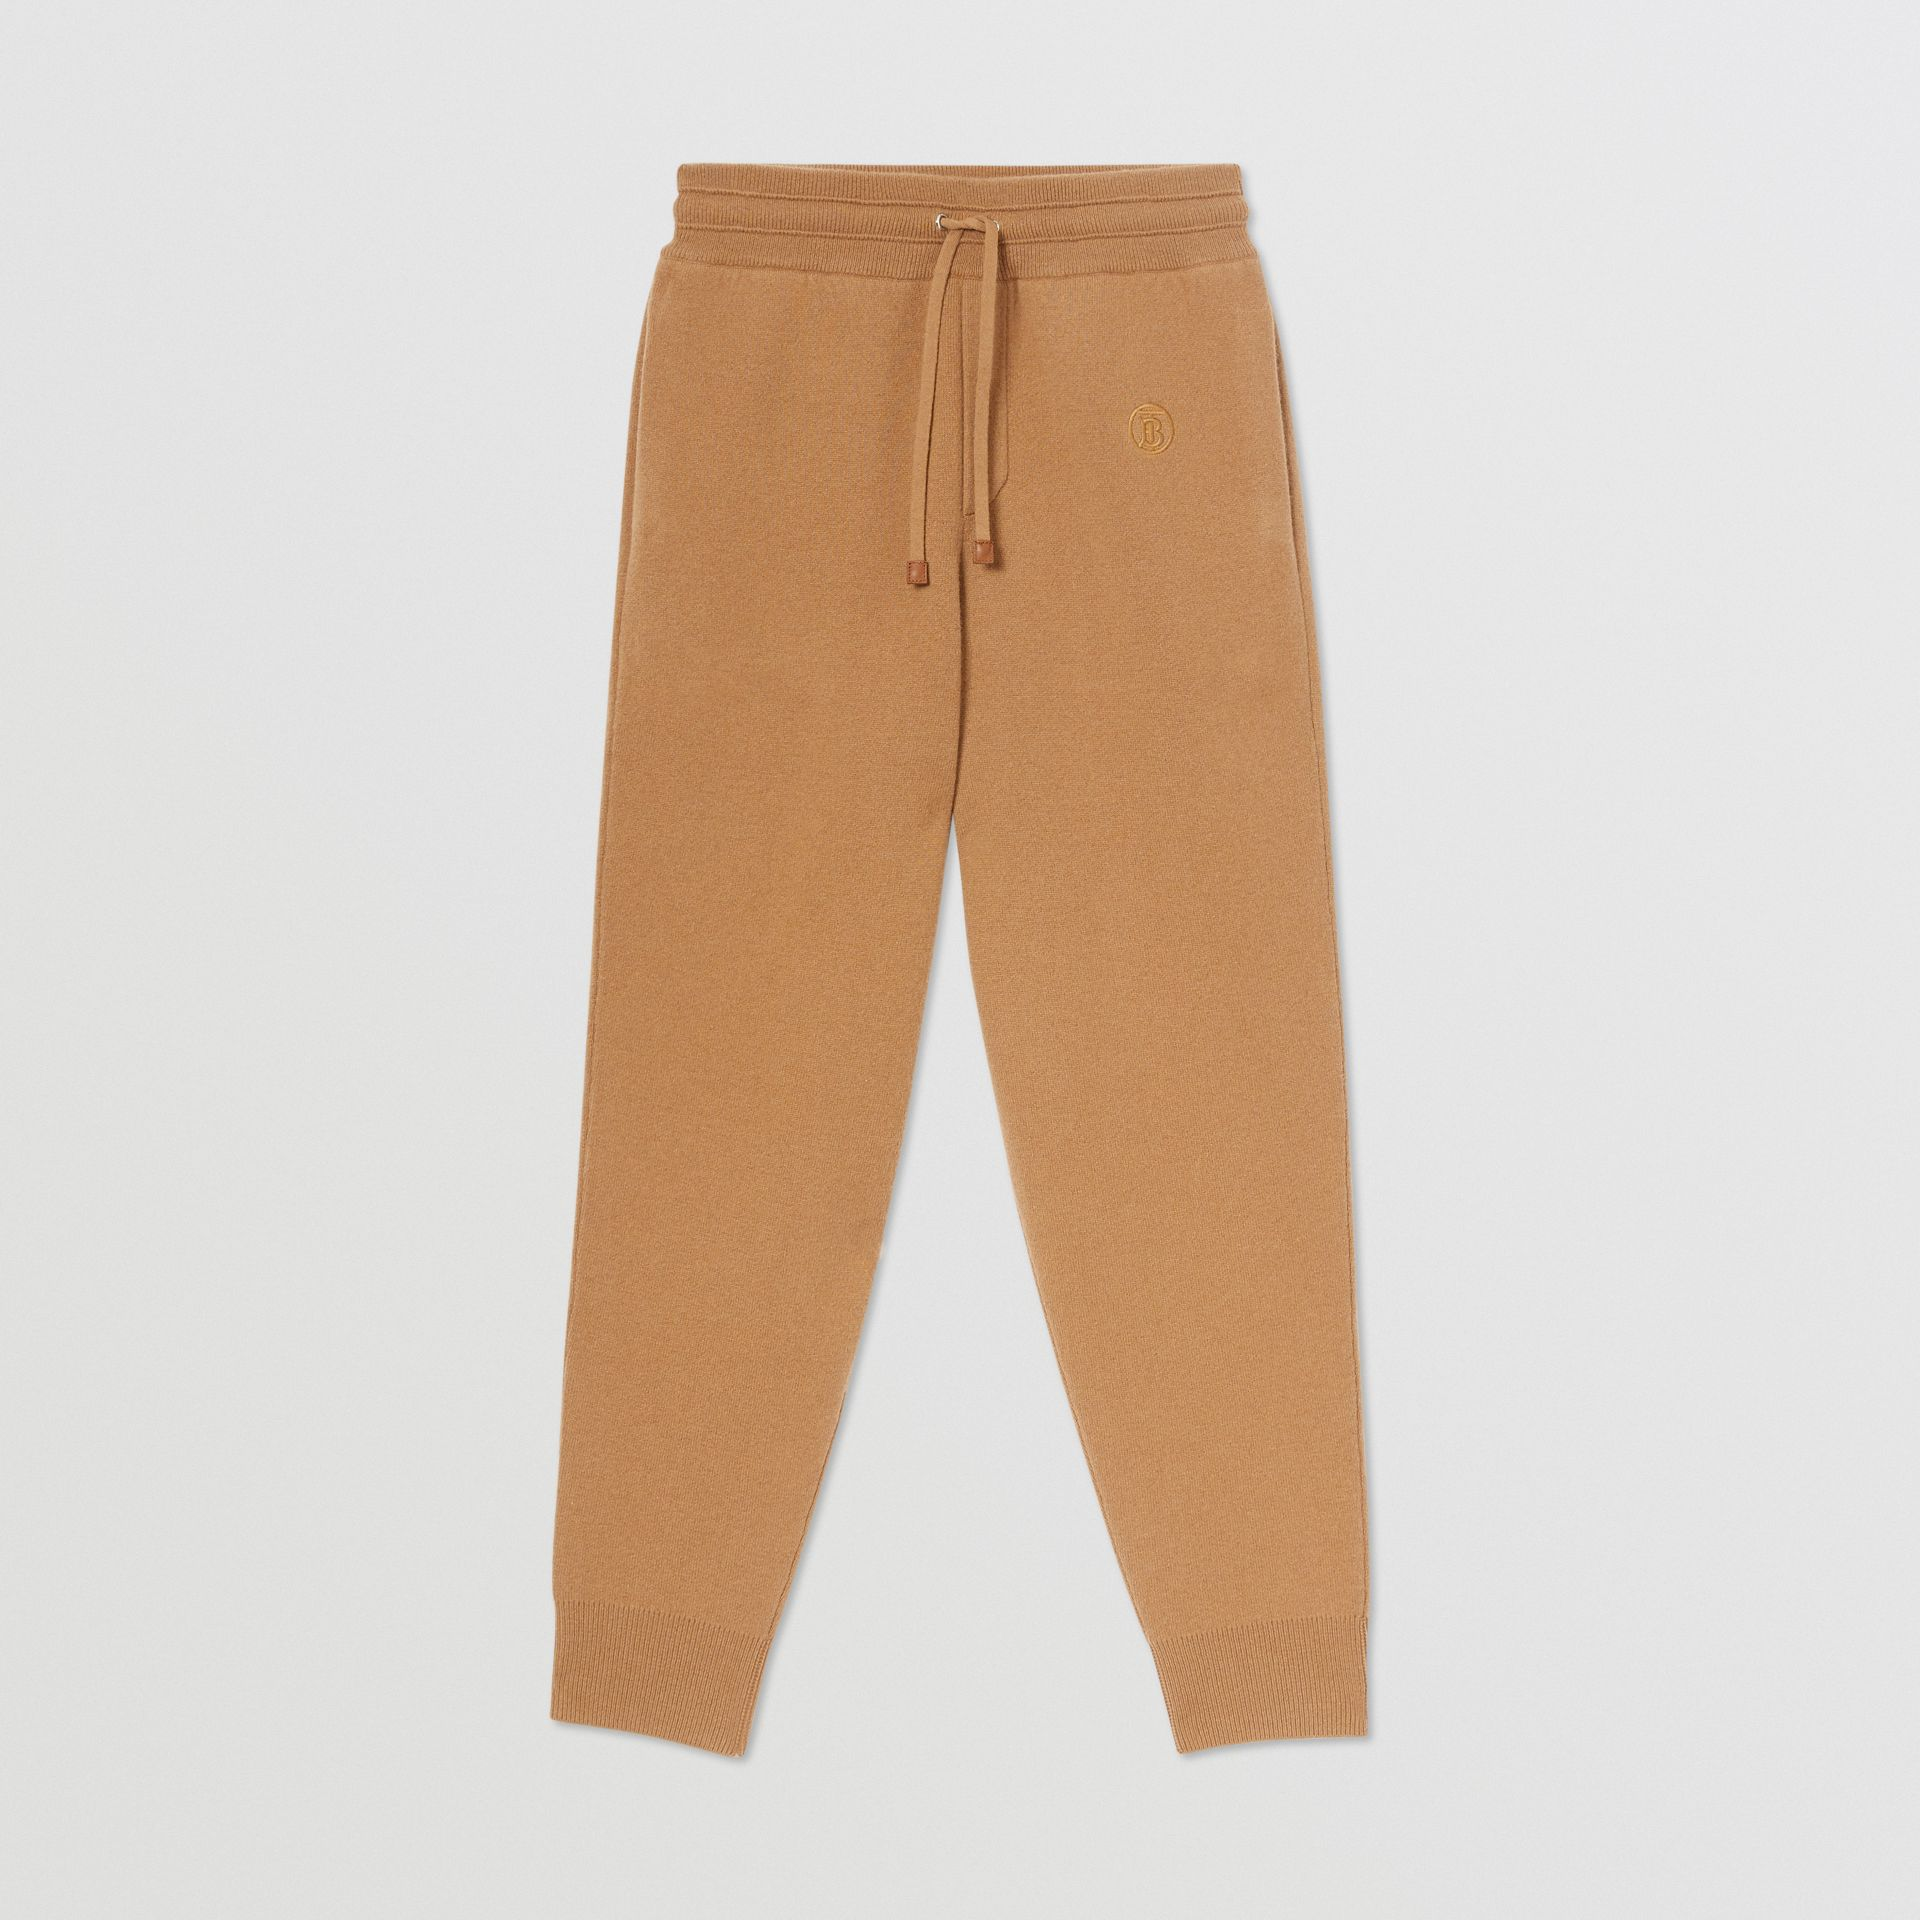 Monogram Motif Cashmere Blend Jogging Pants in Camel - Women | Burberry - gallery image 3